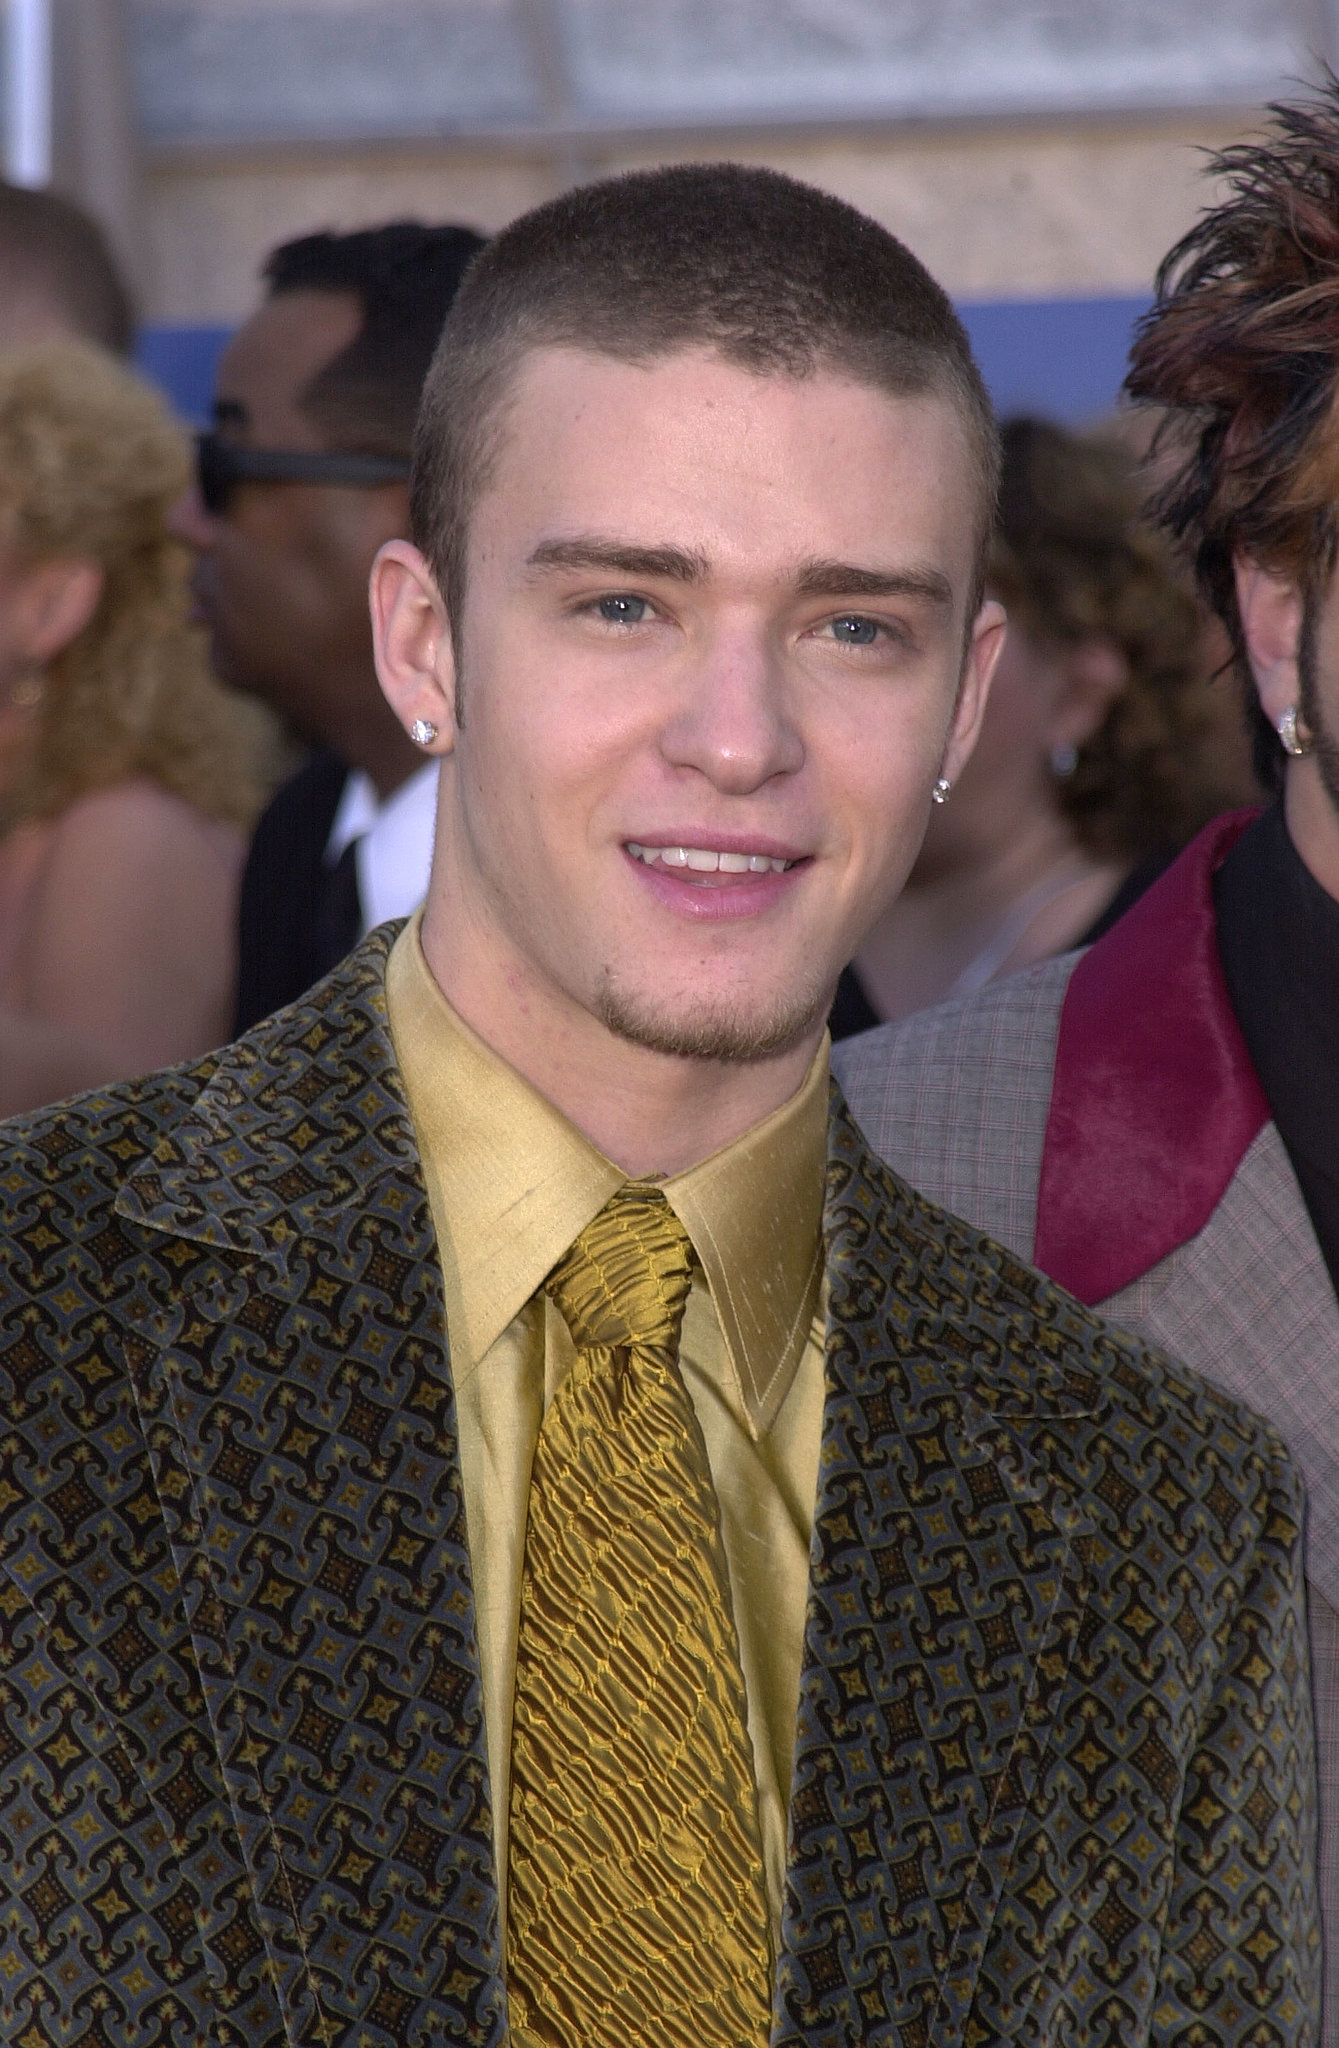 Justin was a suit-and-tie enthusiast even during his days with *NSYNC   — he wore his mustard-yellow combo to the Grammys in 2001.